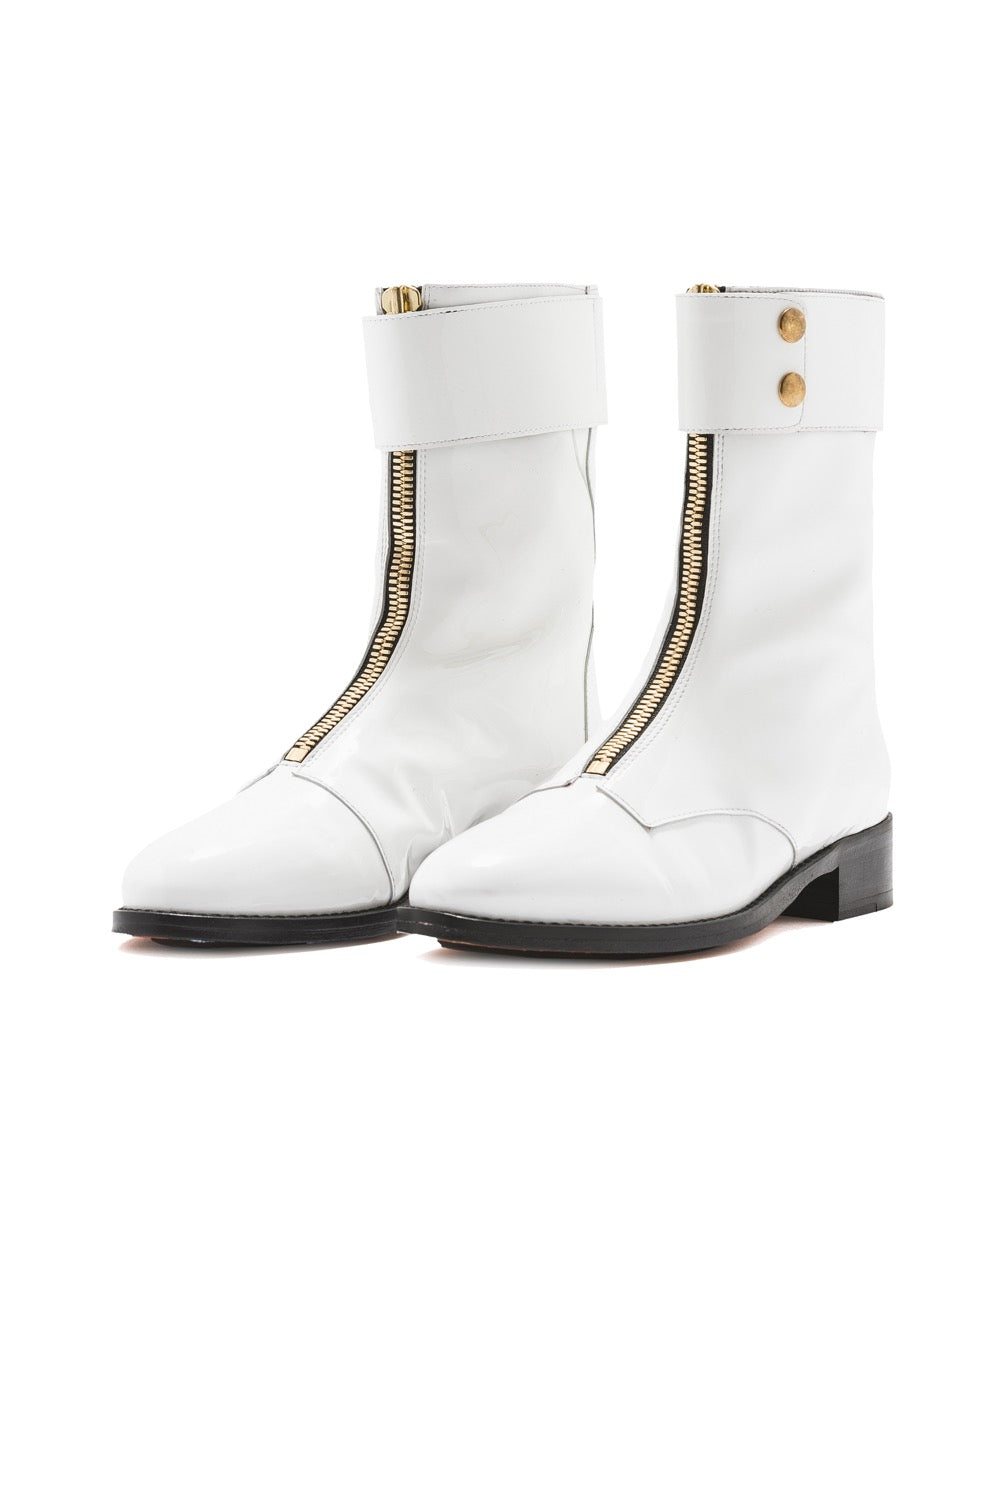 Woodstock ranger boots in white leather